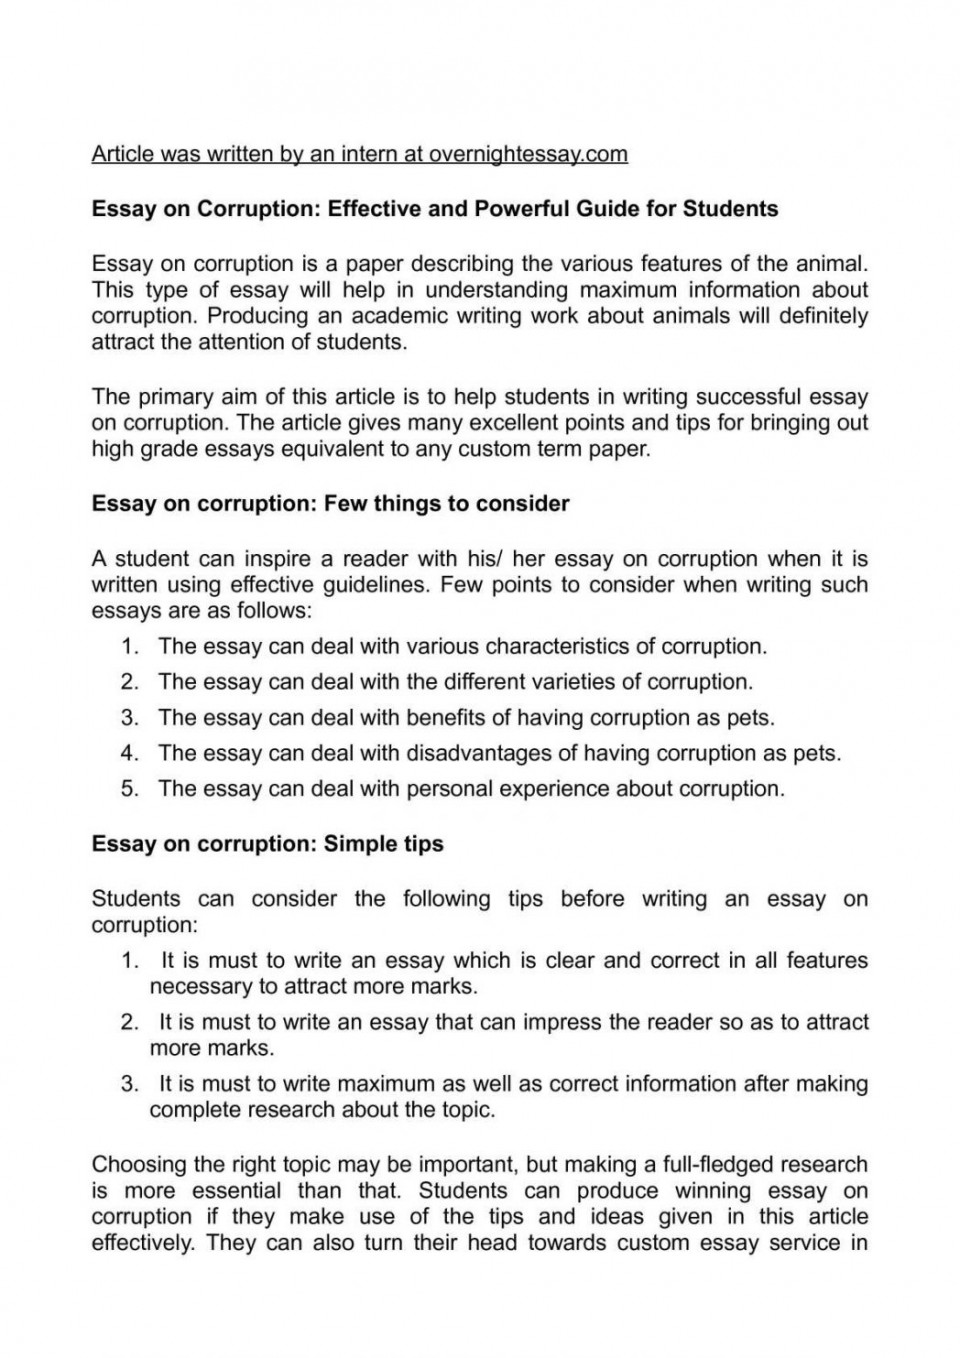 015 How To Write This I Believe Essay Easy Essays Calam Atilde Copy O On Corruption Effective Samples Good Topics Template 1048x1483 Fantastic A What Things 960